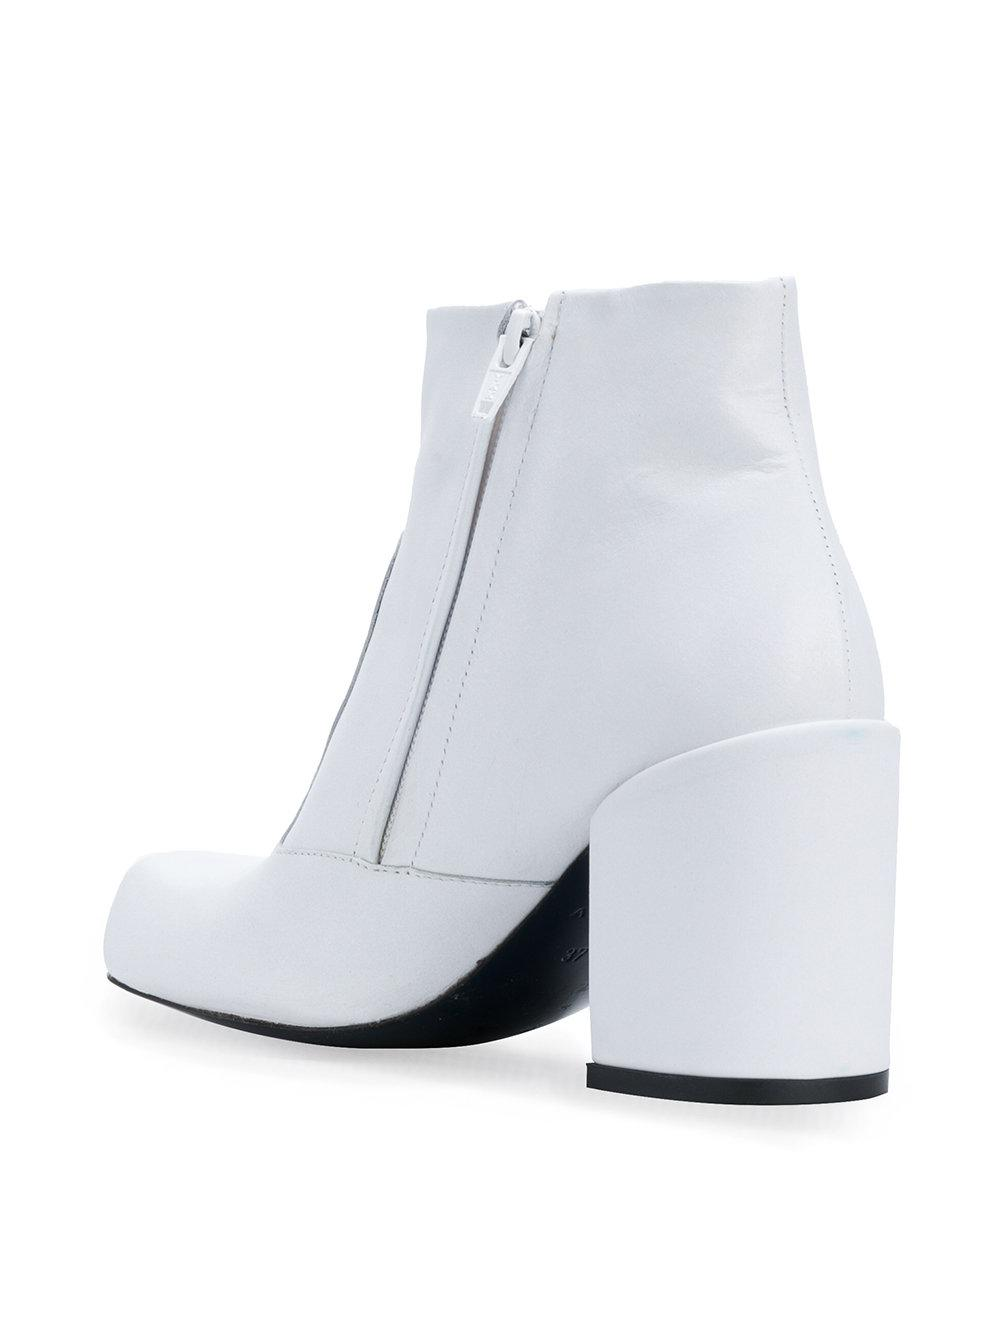 cheap best place outlet newest Aalto block heeled boots visa payment cheap new styles WvpZs0YDC